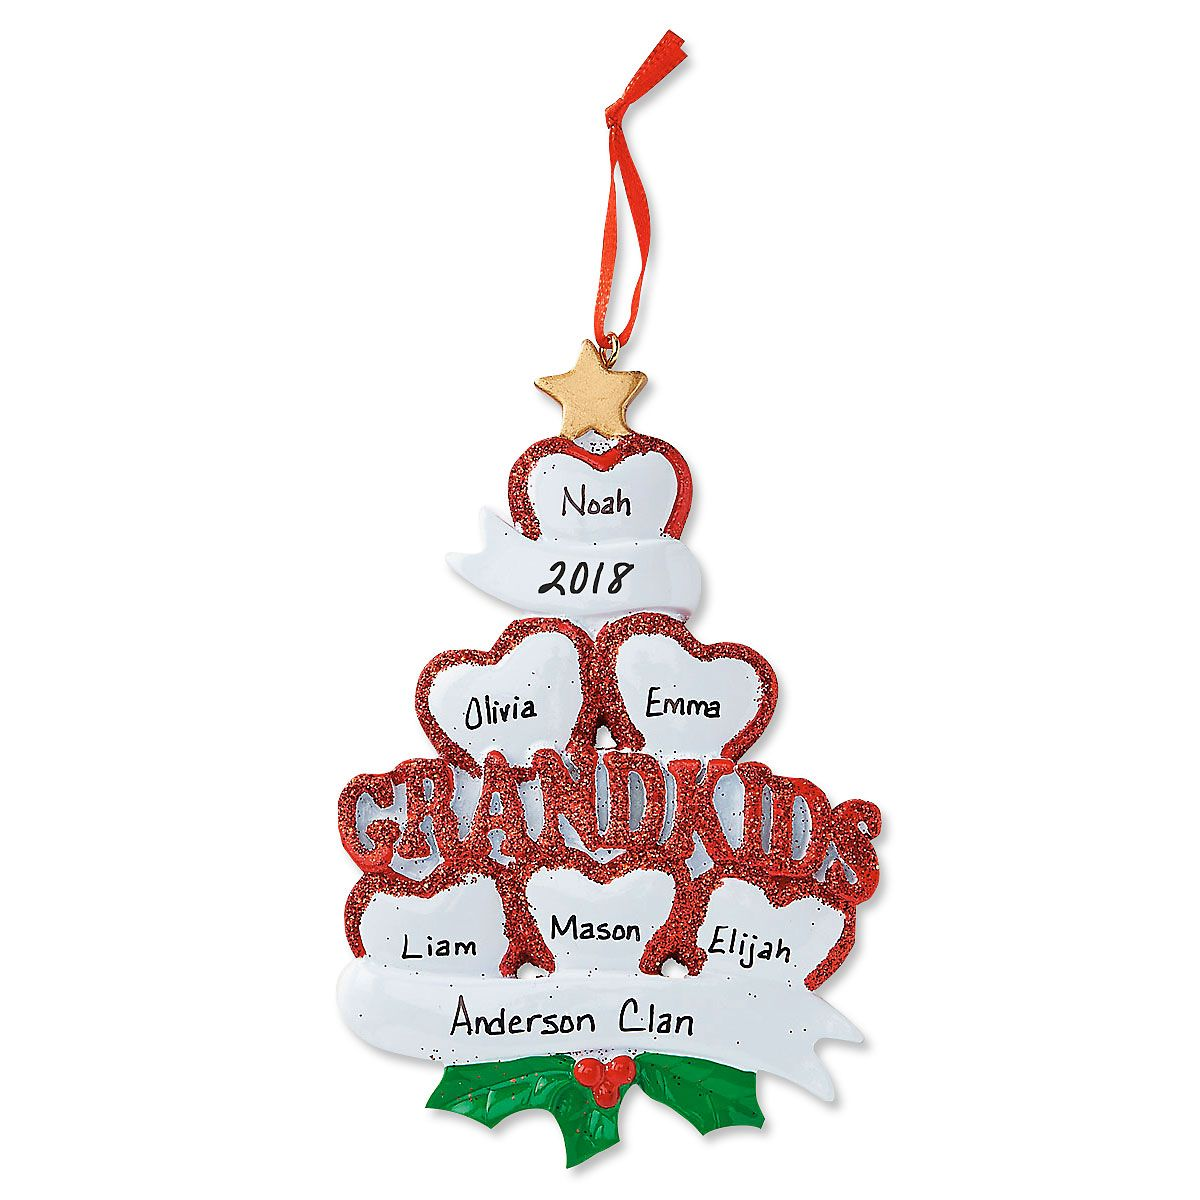 Grandkids with Hearts Ornament-6 Names-616414E